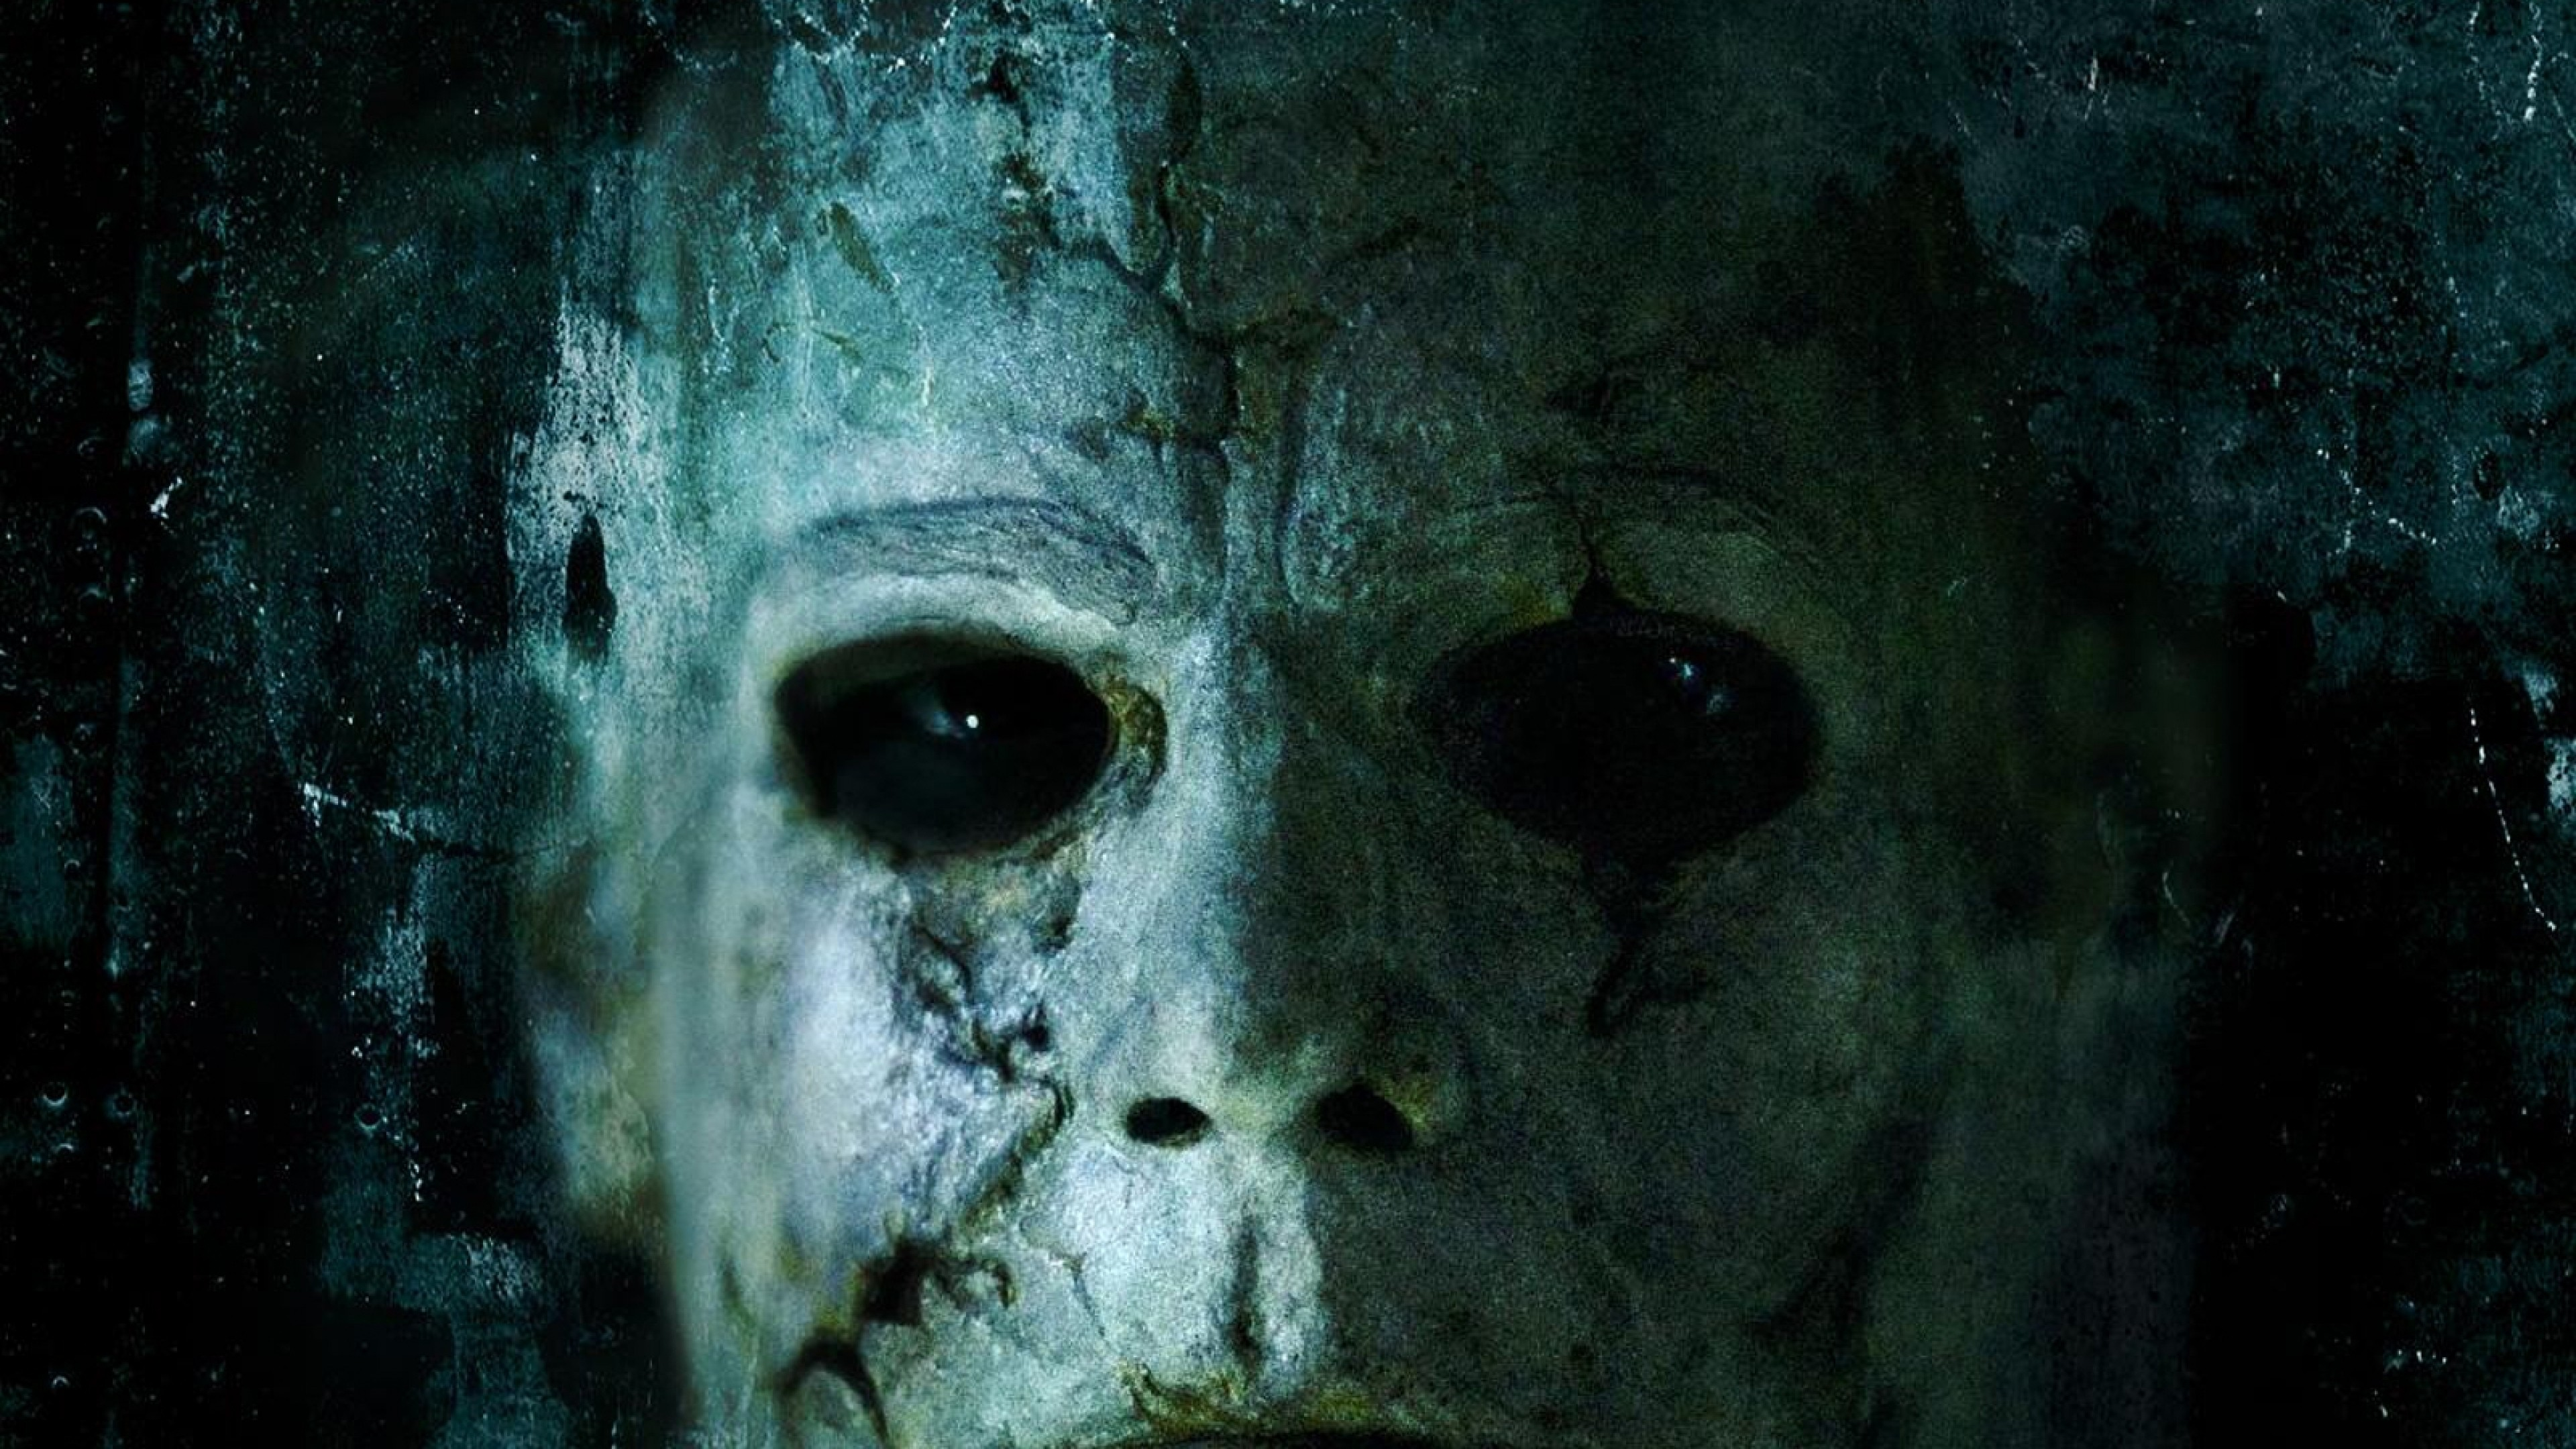 3840x2160 Preview wallpaper halloween 2, michael myers, face, mask, killer, maniac,